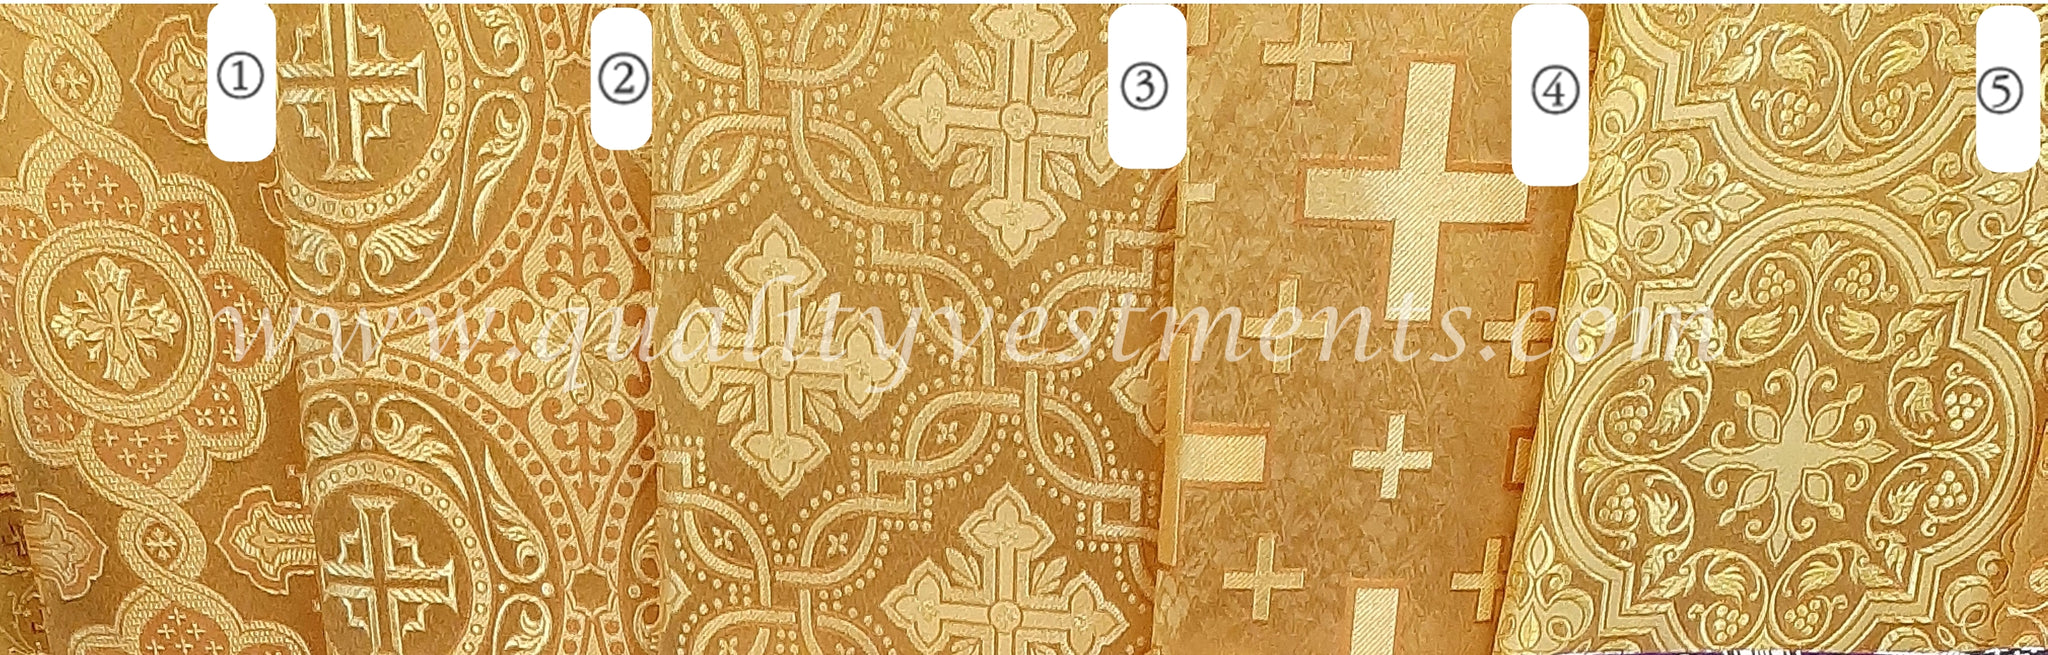 "Gold Church brocade Cross pattern Nonmetallic fabric for vestments 59"" w."